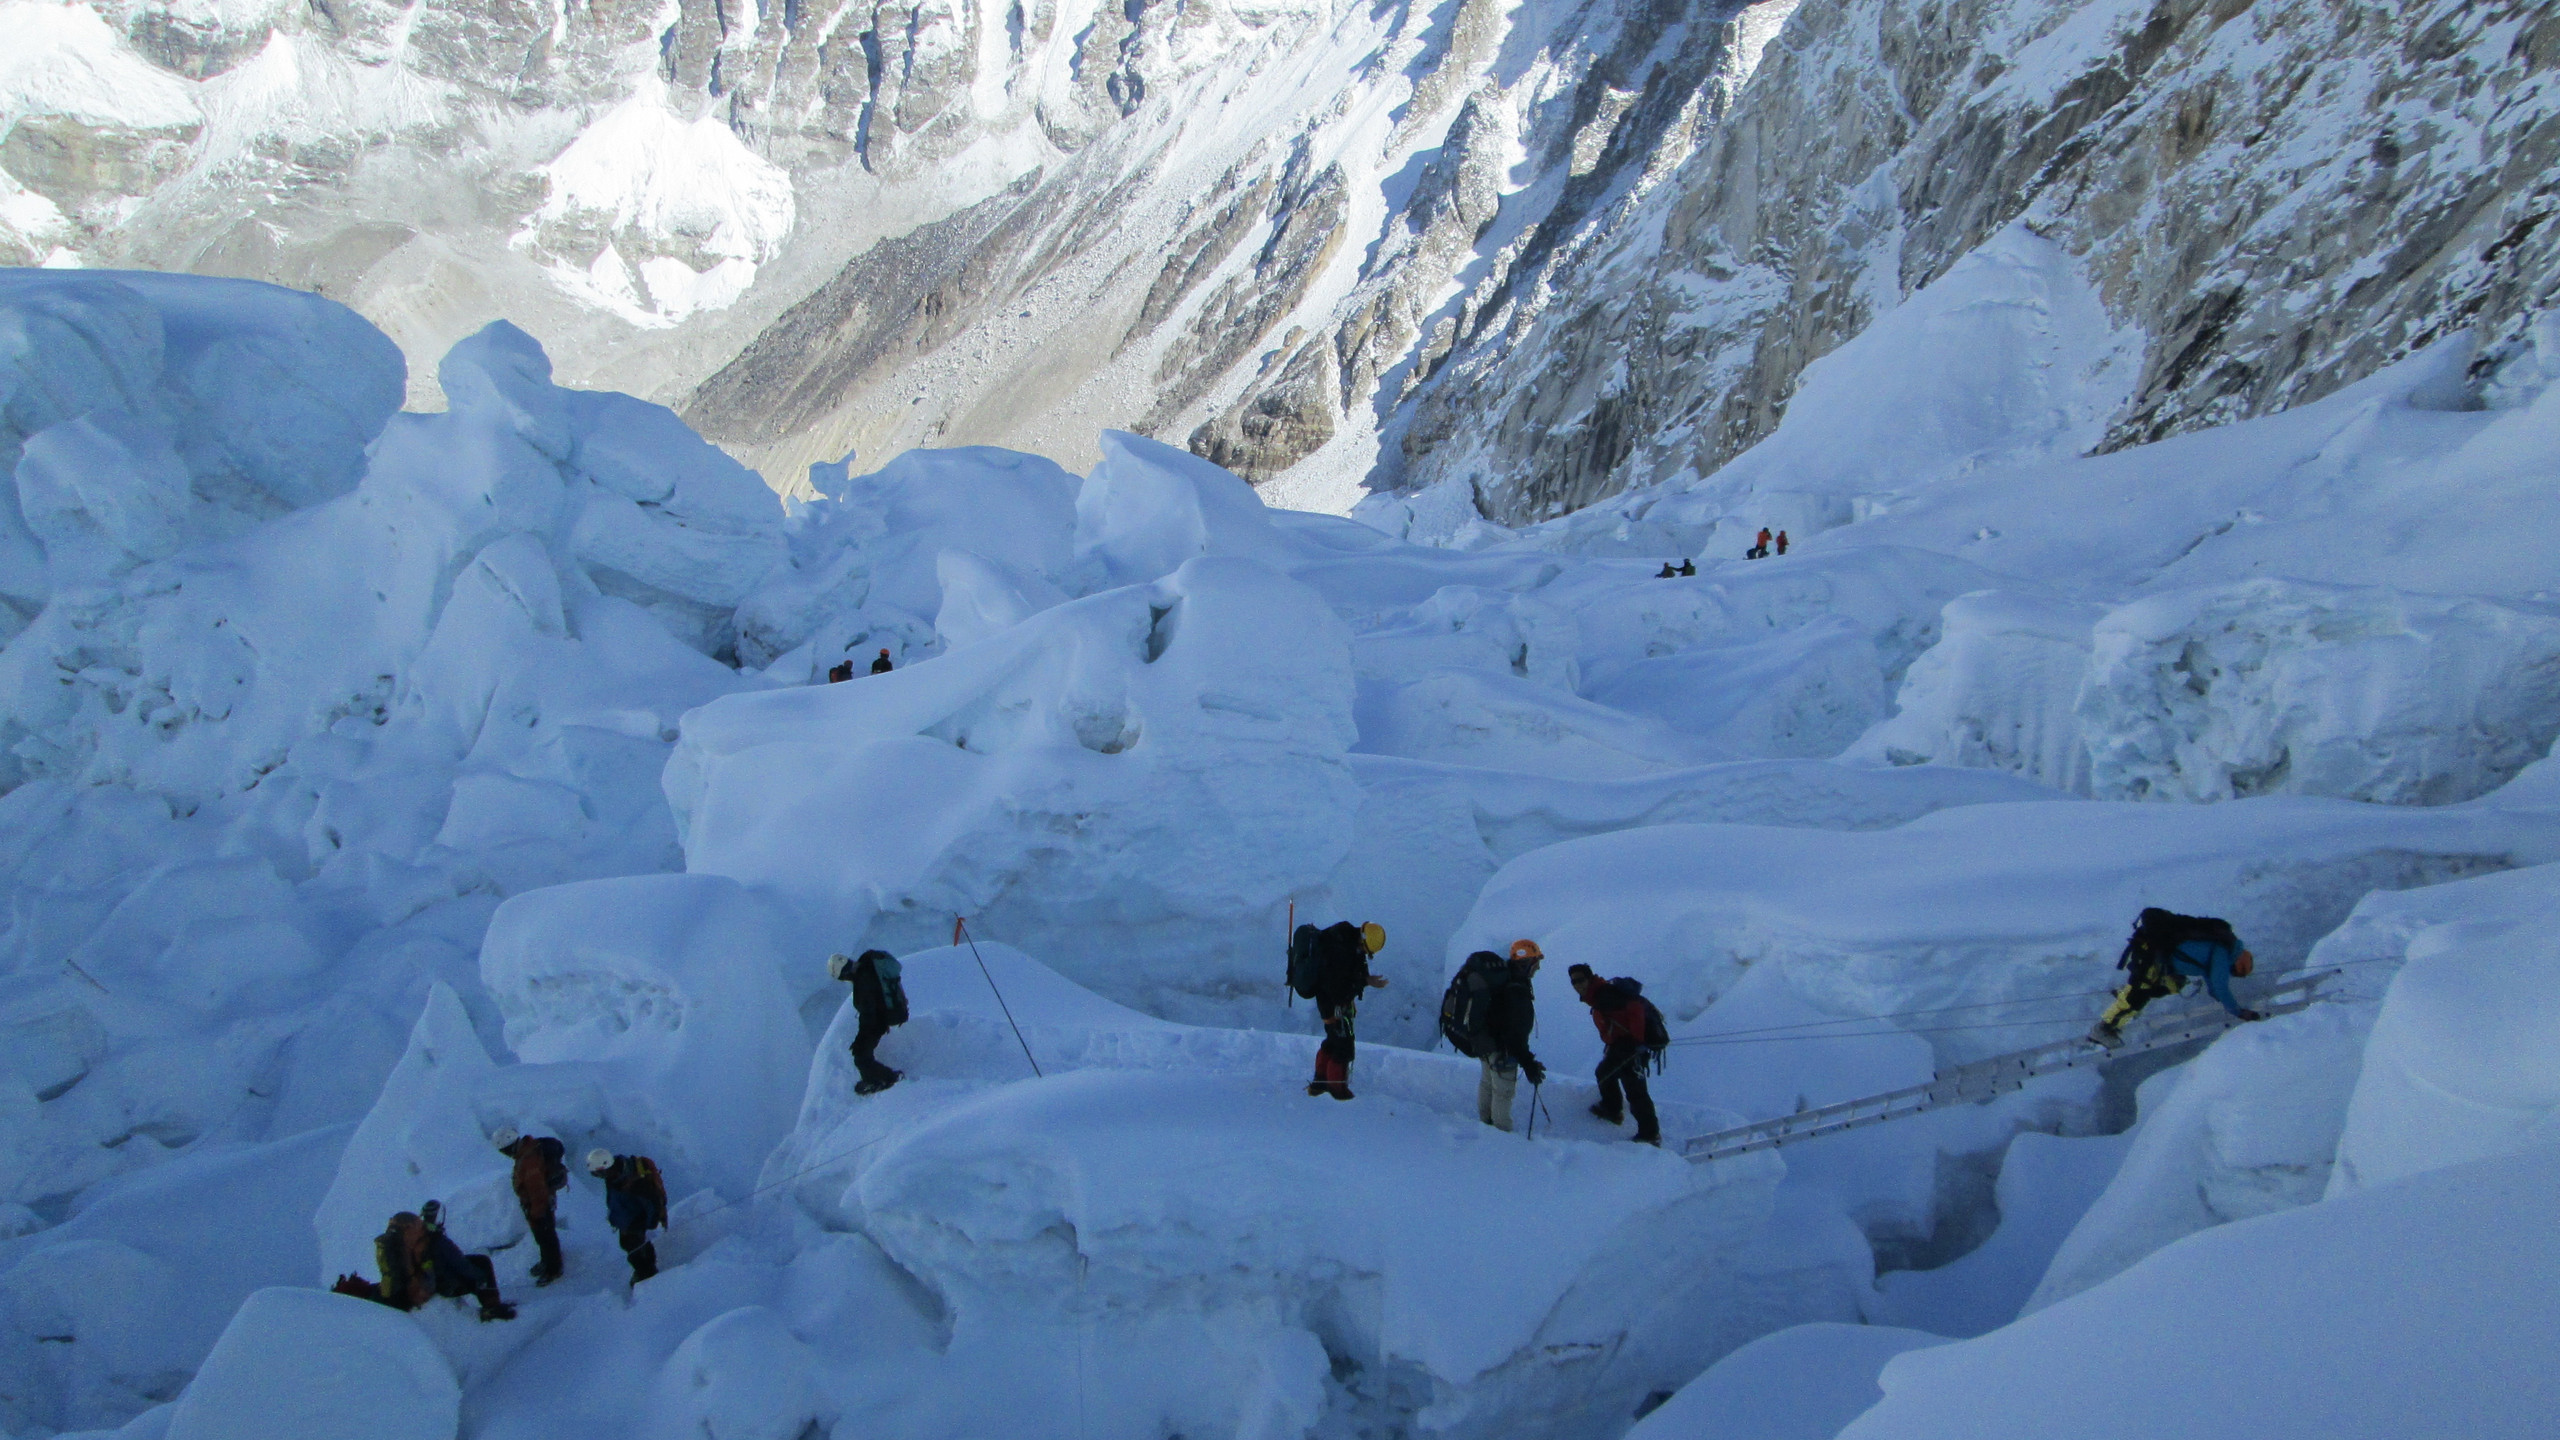 Busy times in the Khumbu Icefall